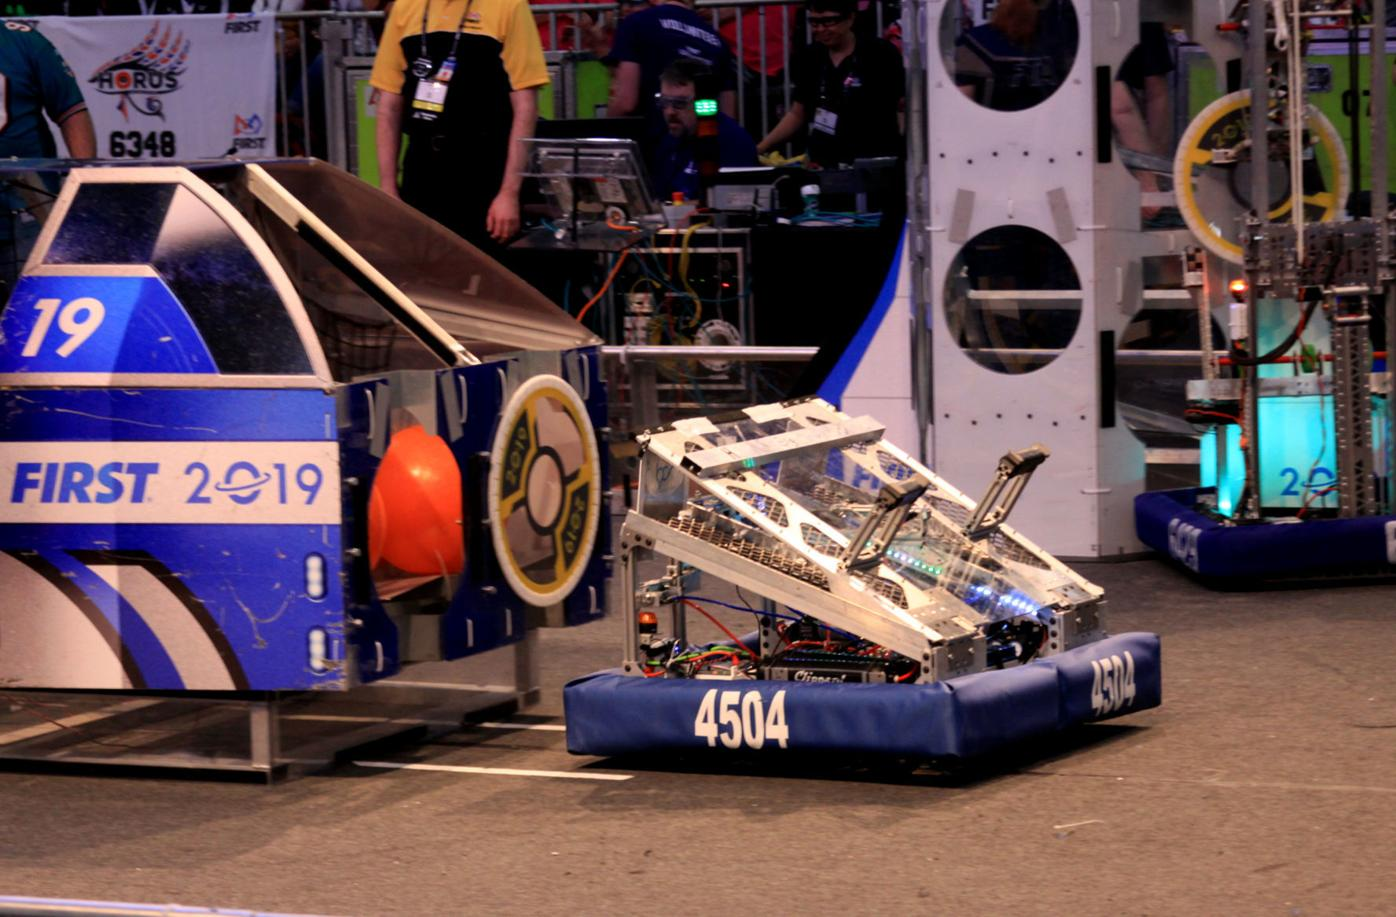 'Wedgie' the B.C. Robotics Team #4504 in competition